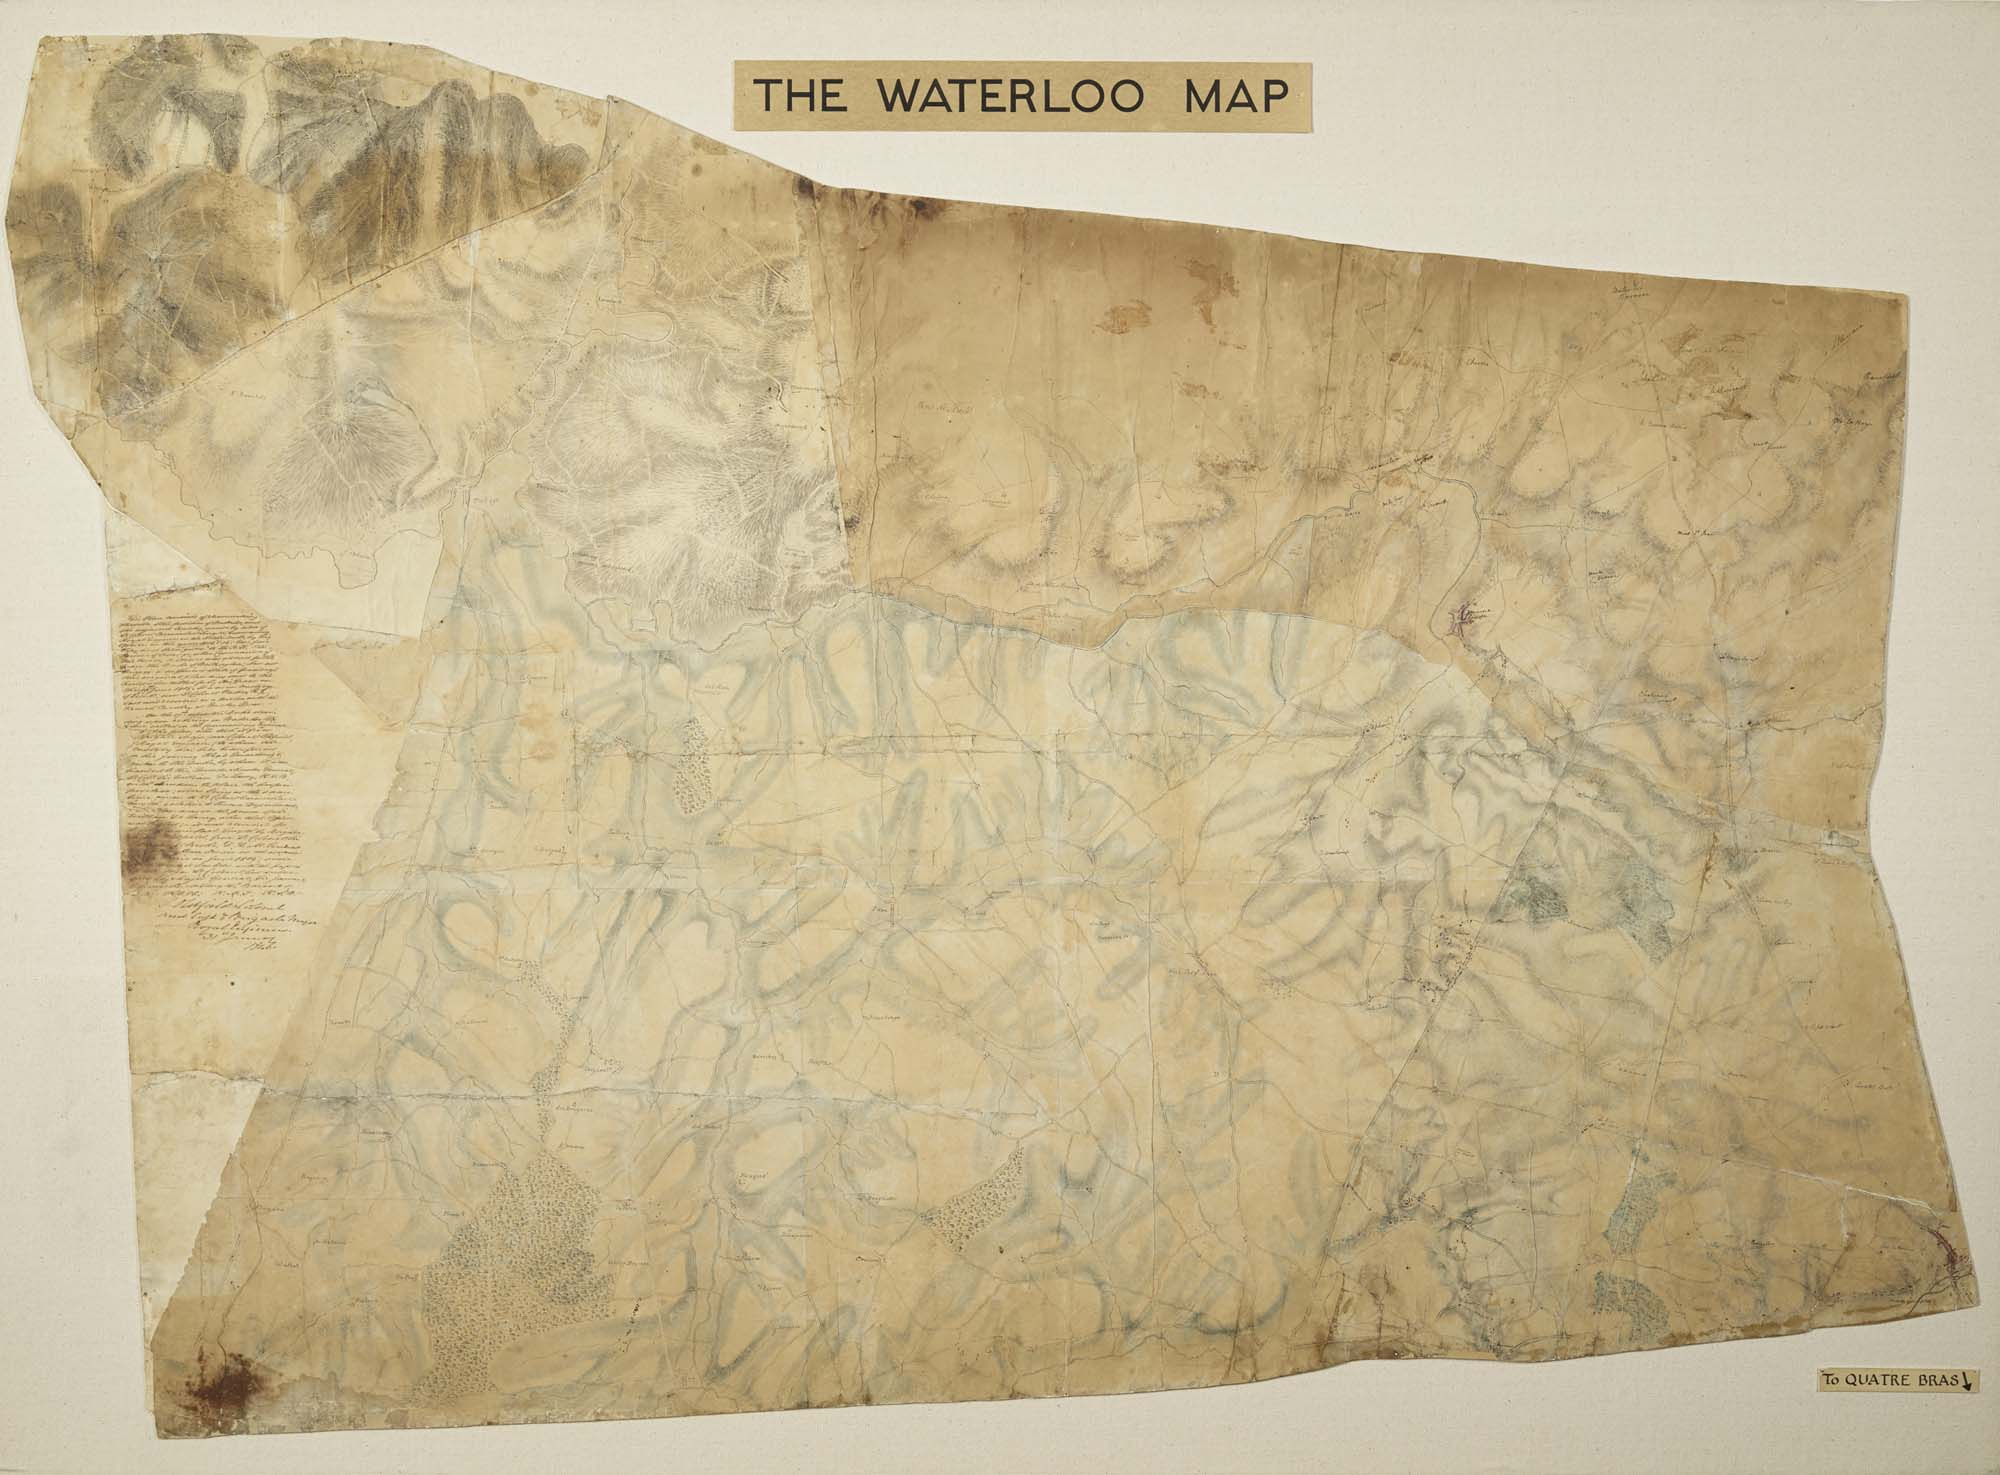 a photo of a faded map on parchment